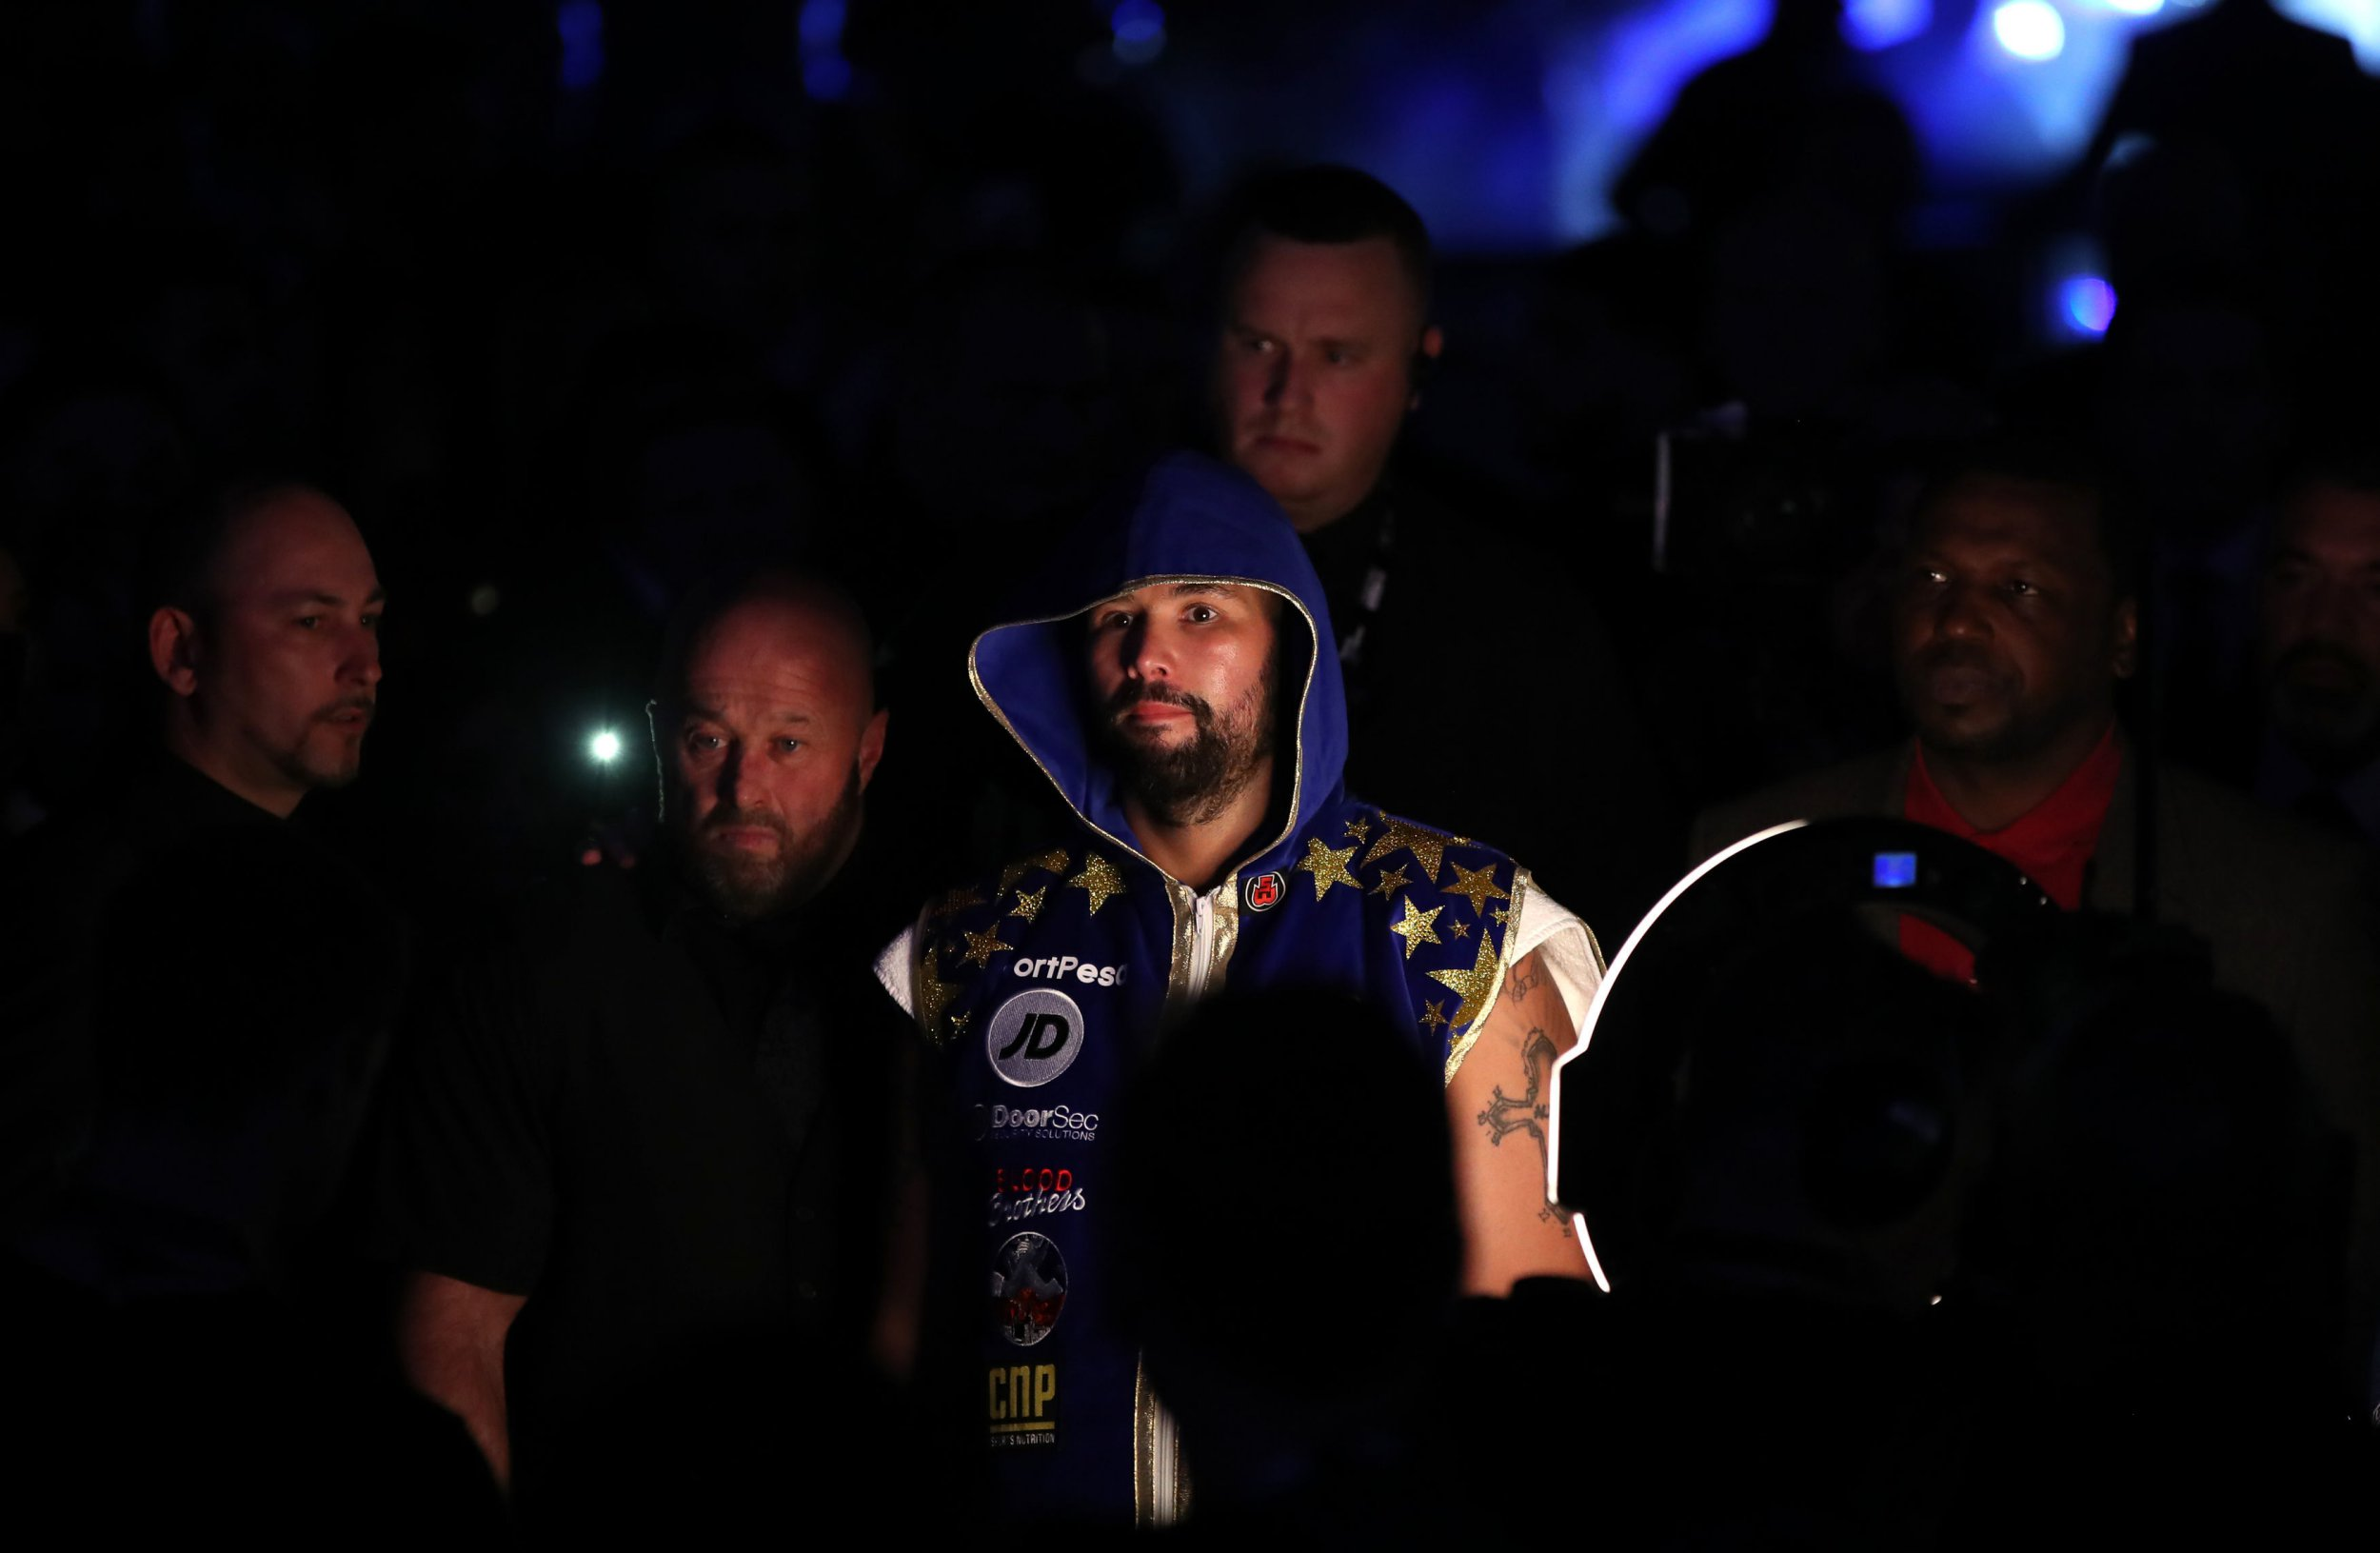 Tony Bellew 'mutually agrees' to fight undisputed cruiserweight champion Oleksandr Usyk